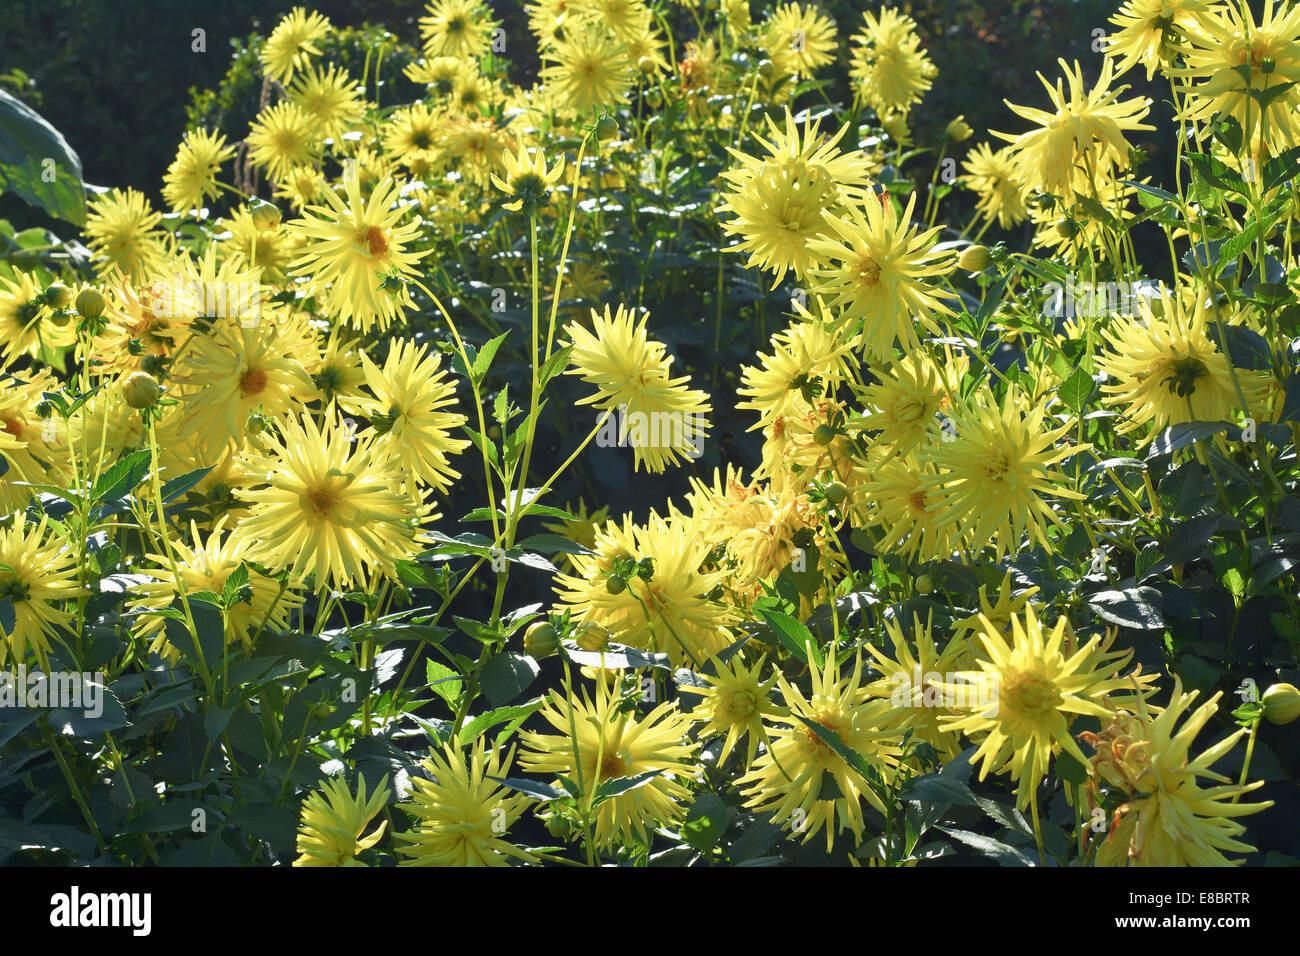 Sunny Garden Scene with Spider Chrysanthemums in Bloom - Stock Image